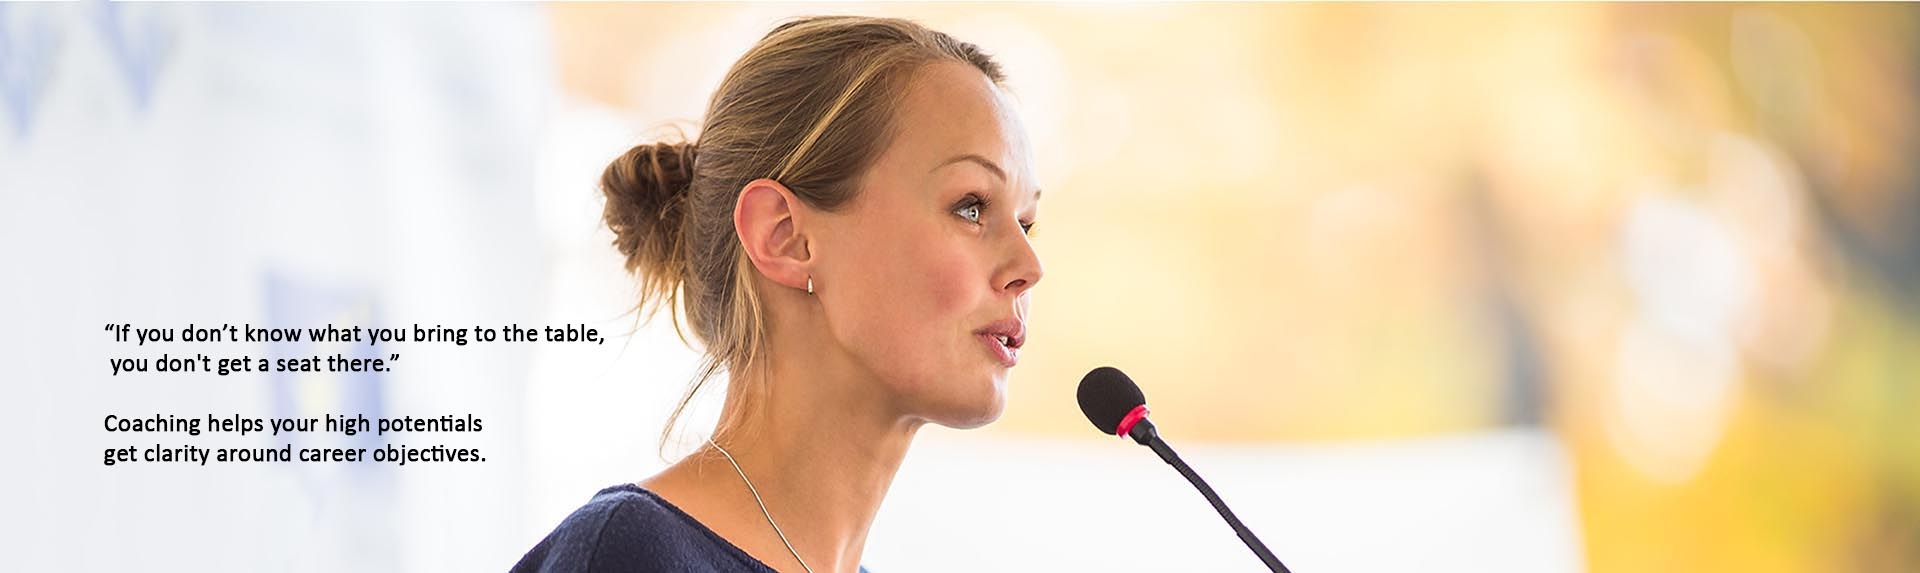 attractive business woman speaking into microphone